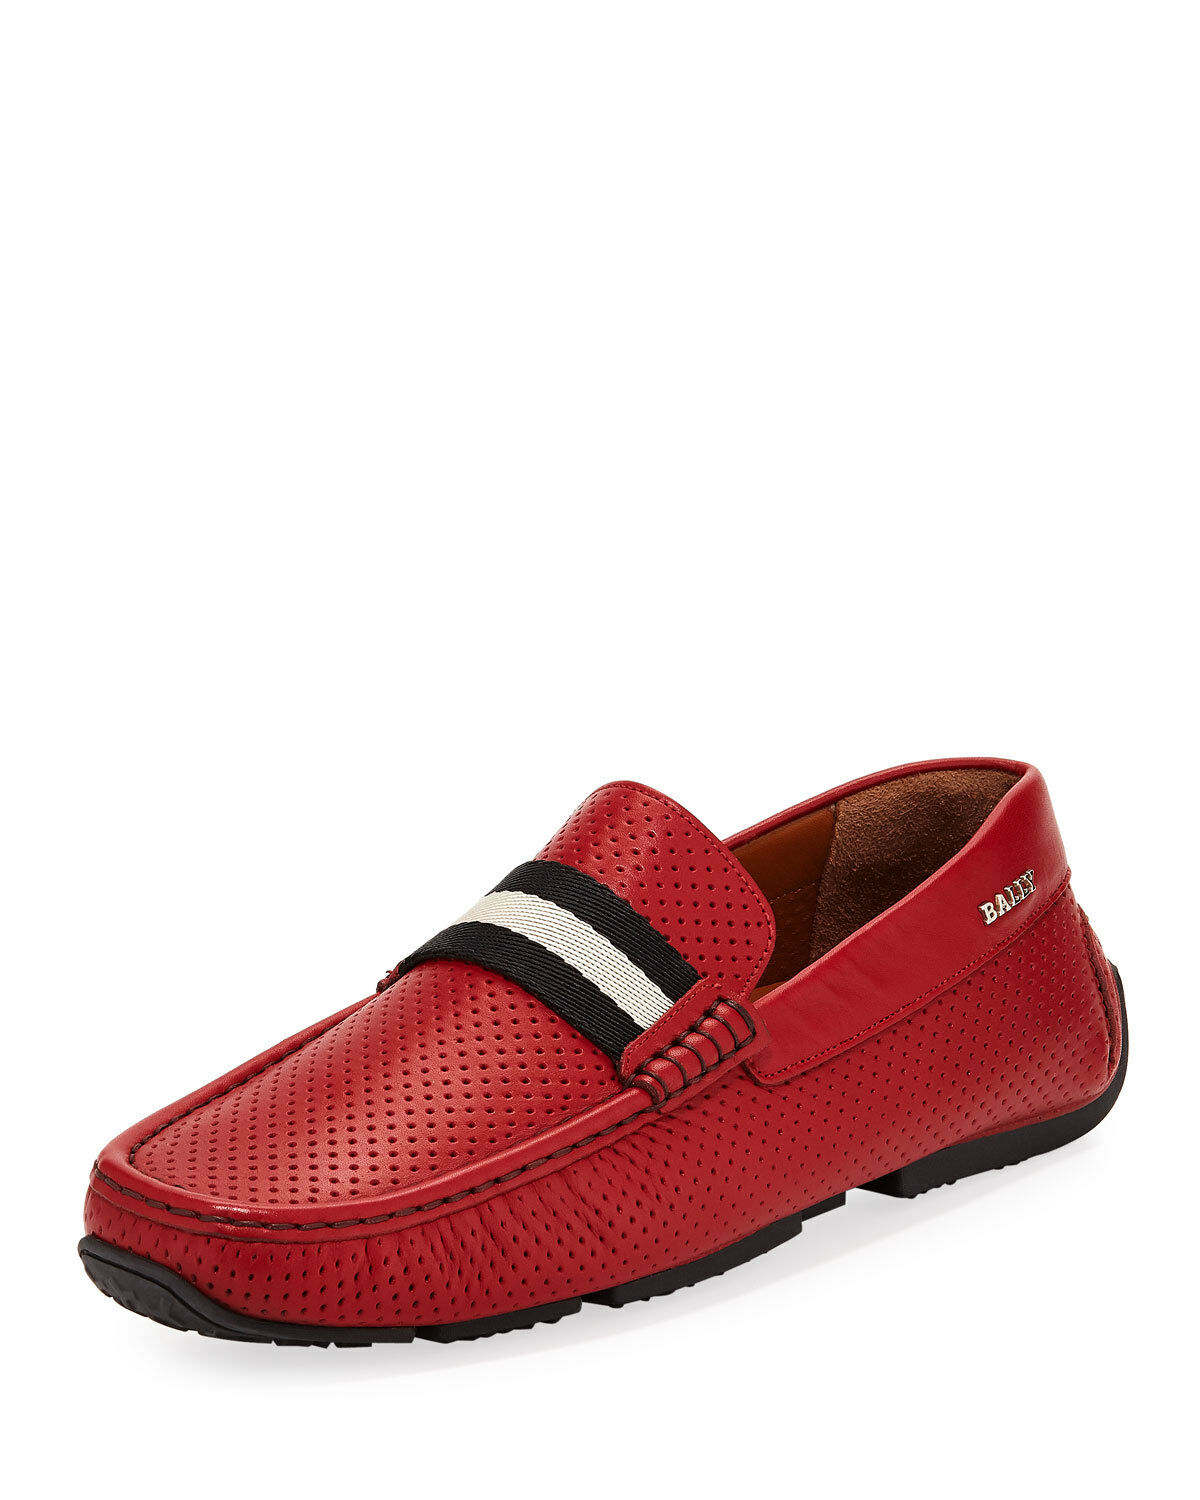 BALLY PEARCE RED PERFORATED LEATHER WEB LOGO DRIVE LOAFERS 9 US 42 ITALY